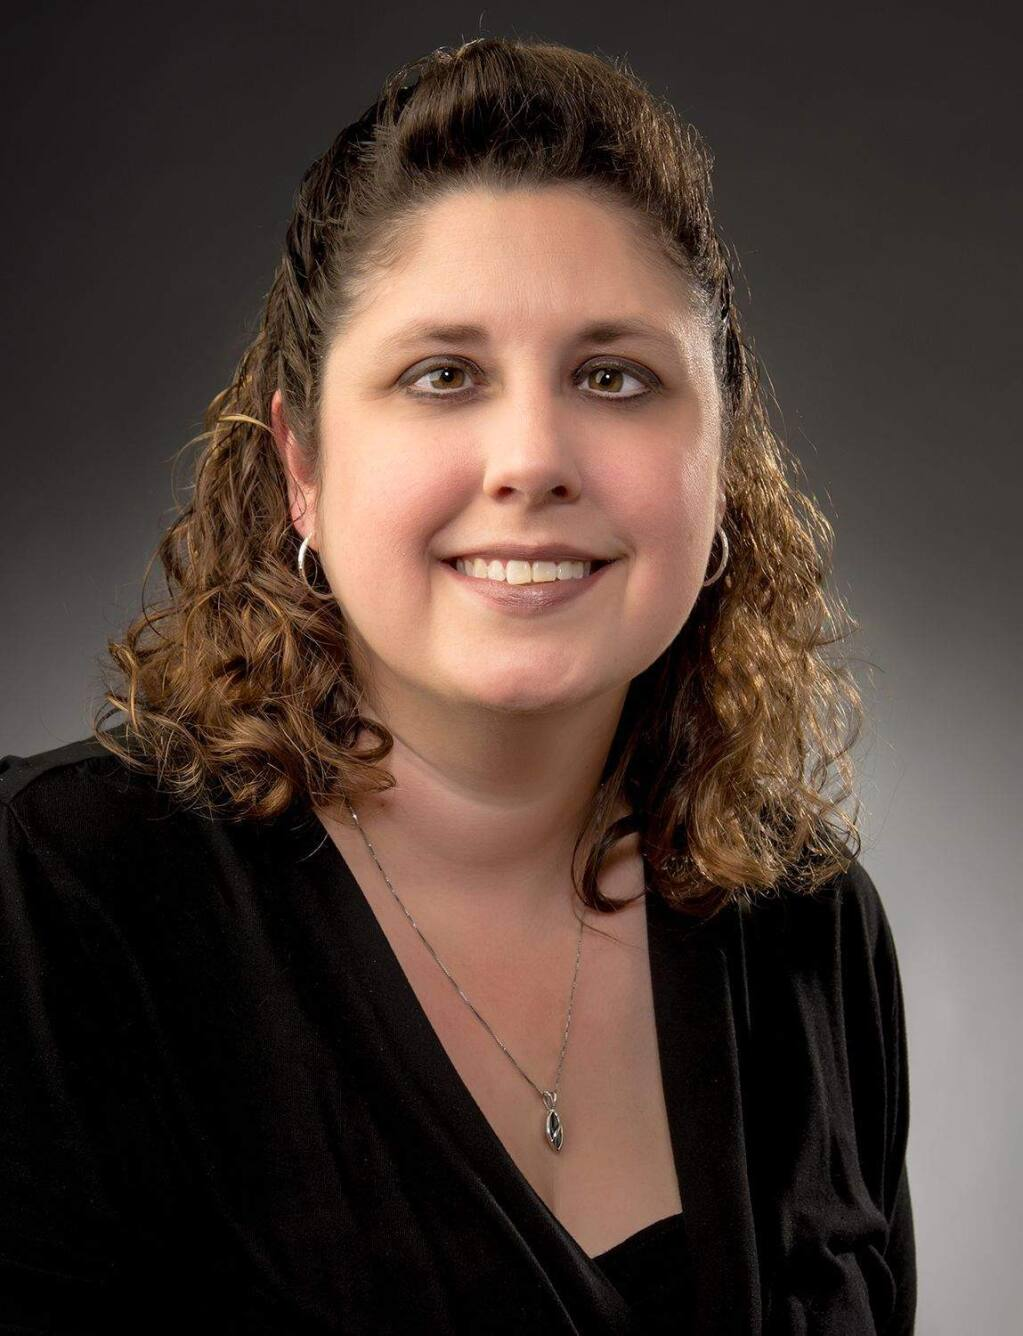 Melissa Von Bima is the human resources manager for Sutter Santa Rosa Regional Hospital.